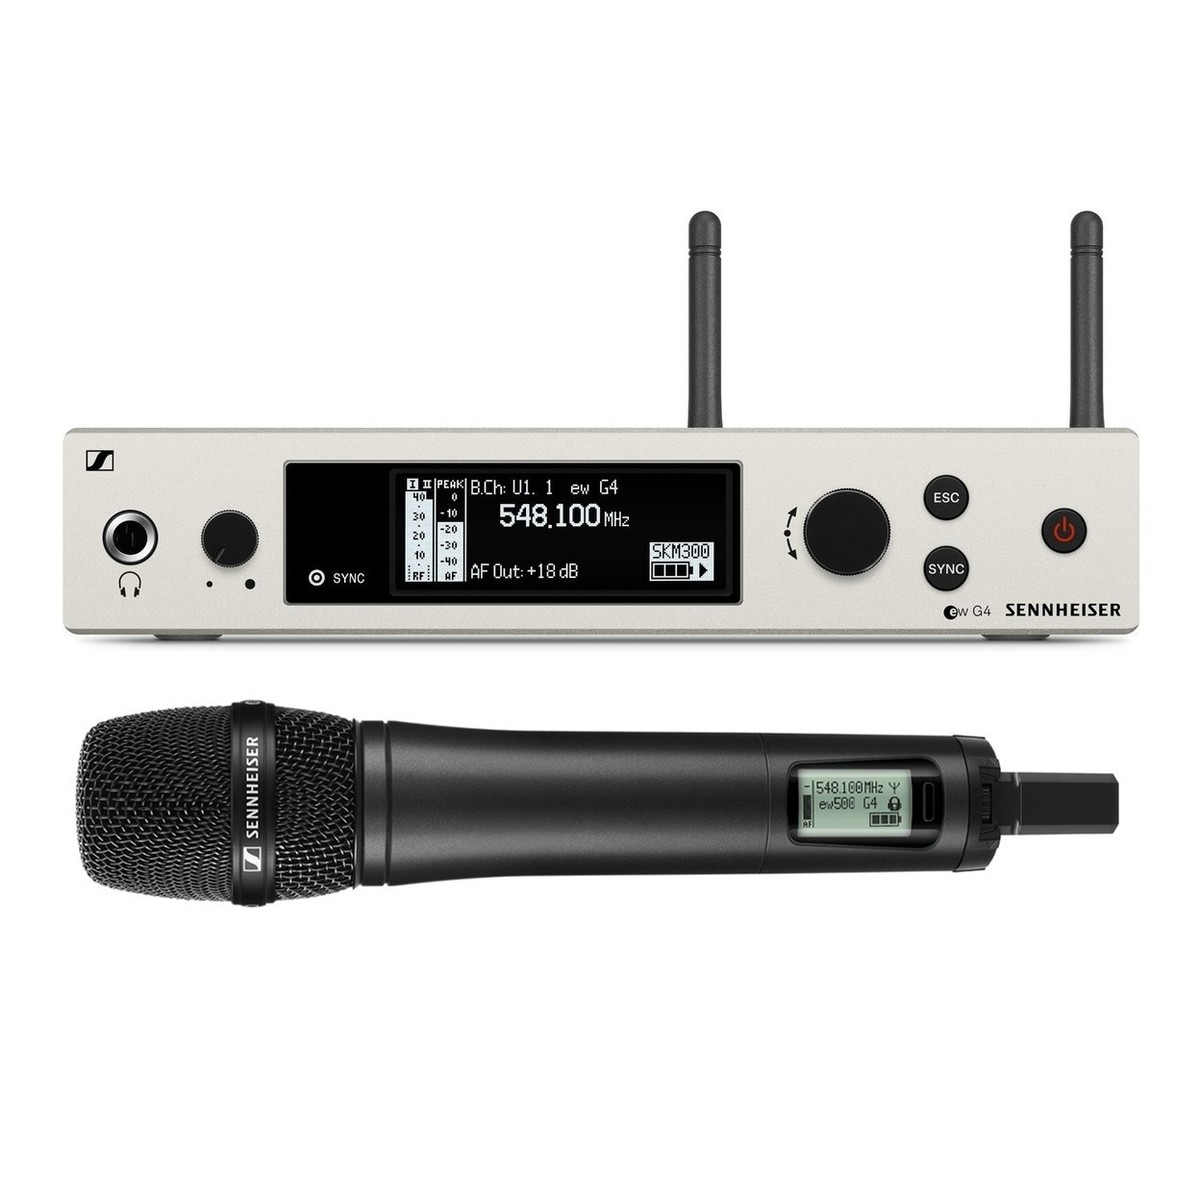 sennheiser ew 500 g4 wireless microphone system with 935 ch38 at gear4music. Black Bedroom Furniture Sets. Home Design Ideas